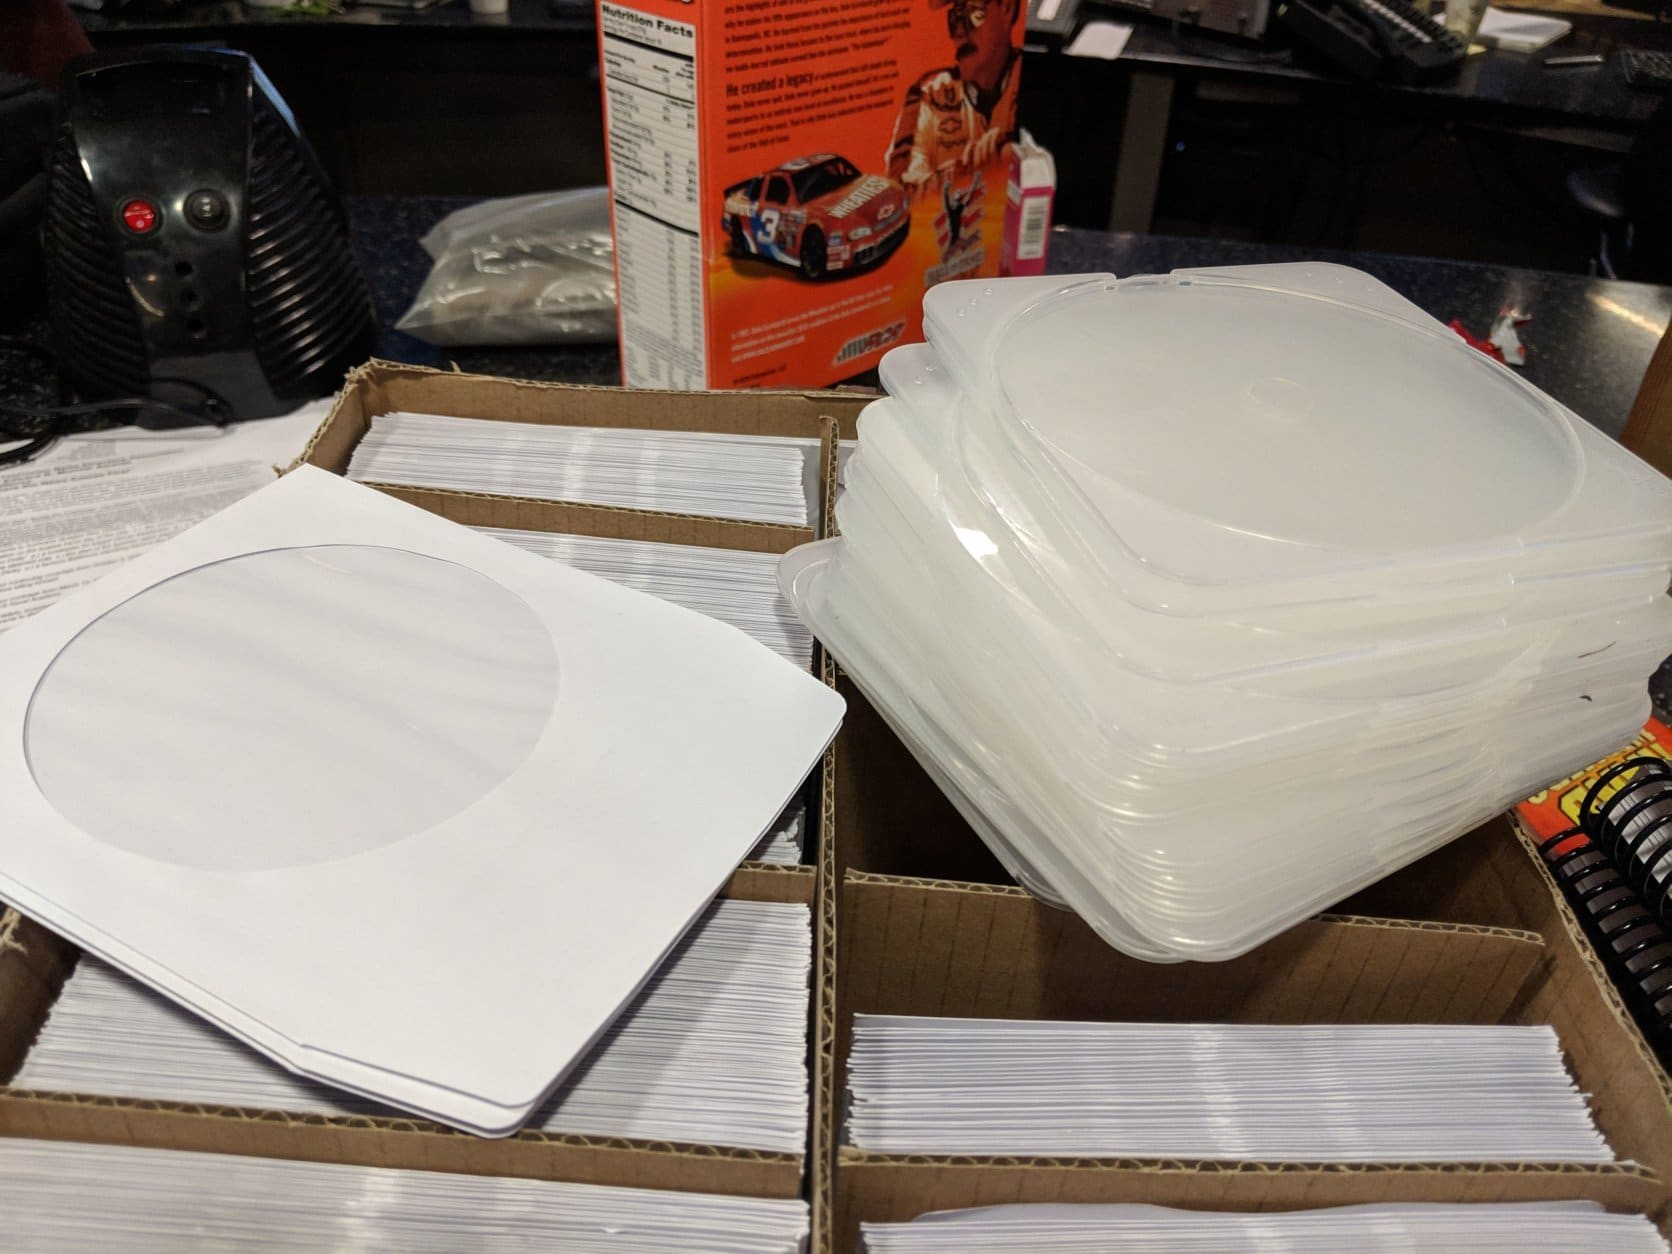 Here's a whole box full of plastic and paper sleeves for disc media, all of which would have been more useful during the Clinton administration. (WTOP/Jack Pointer)